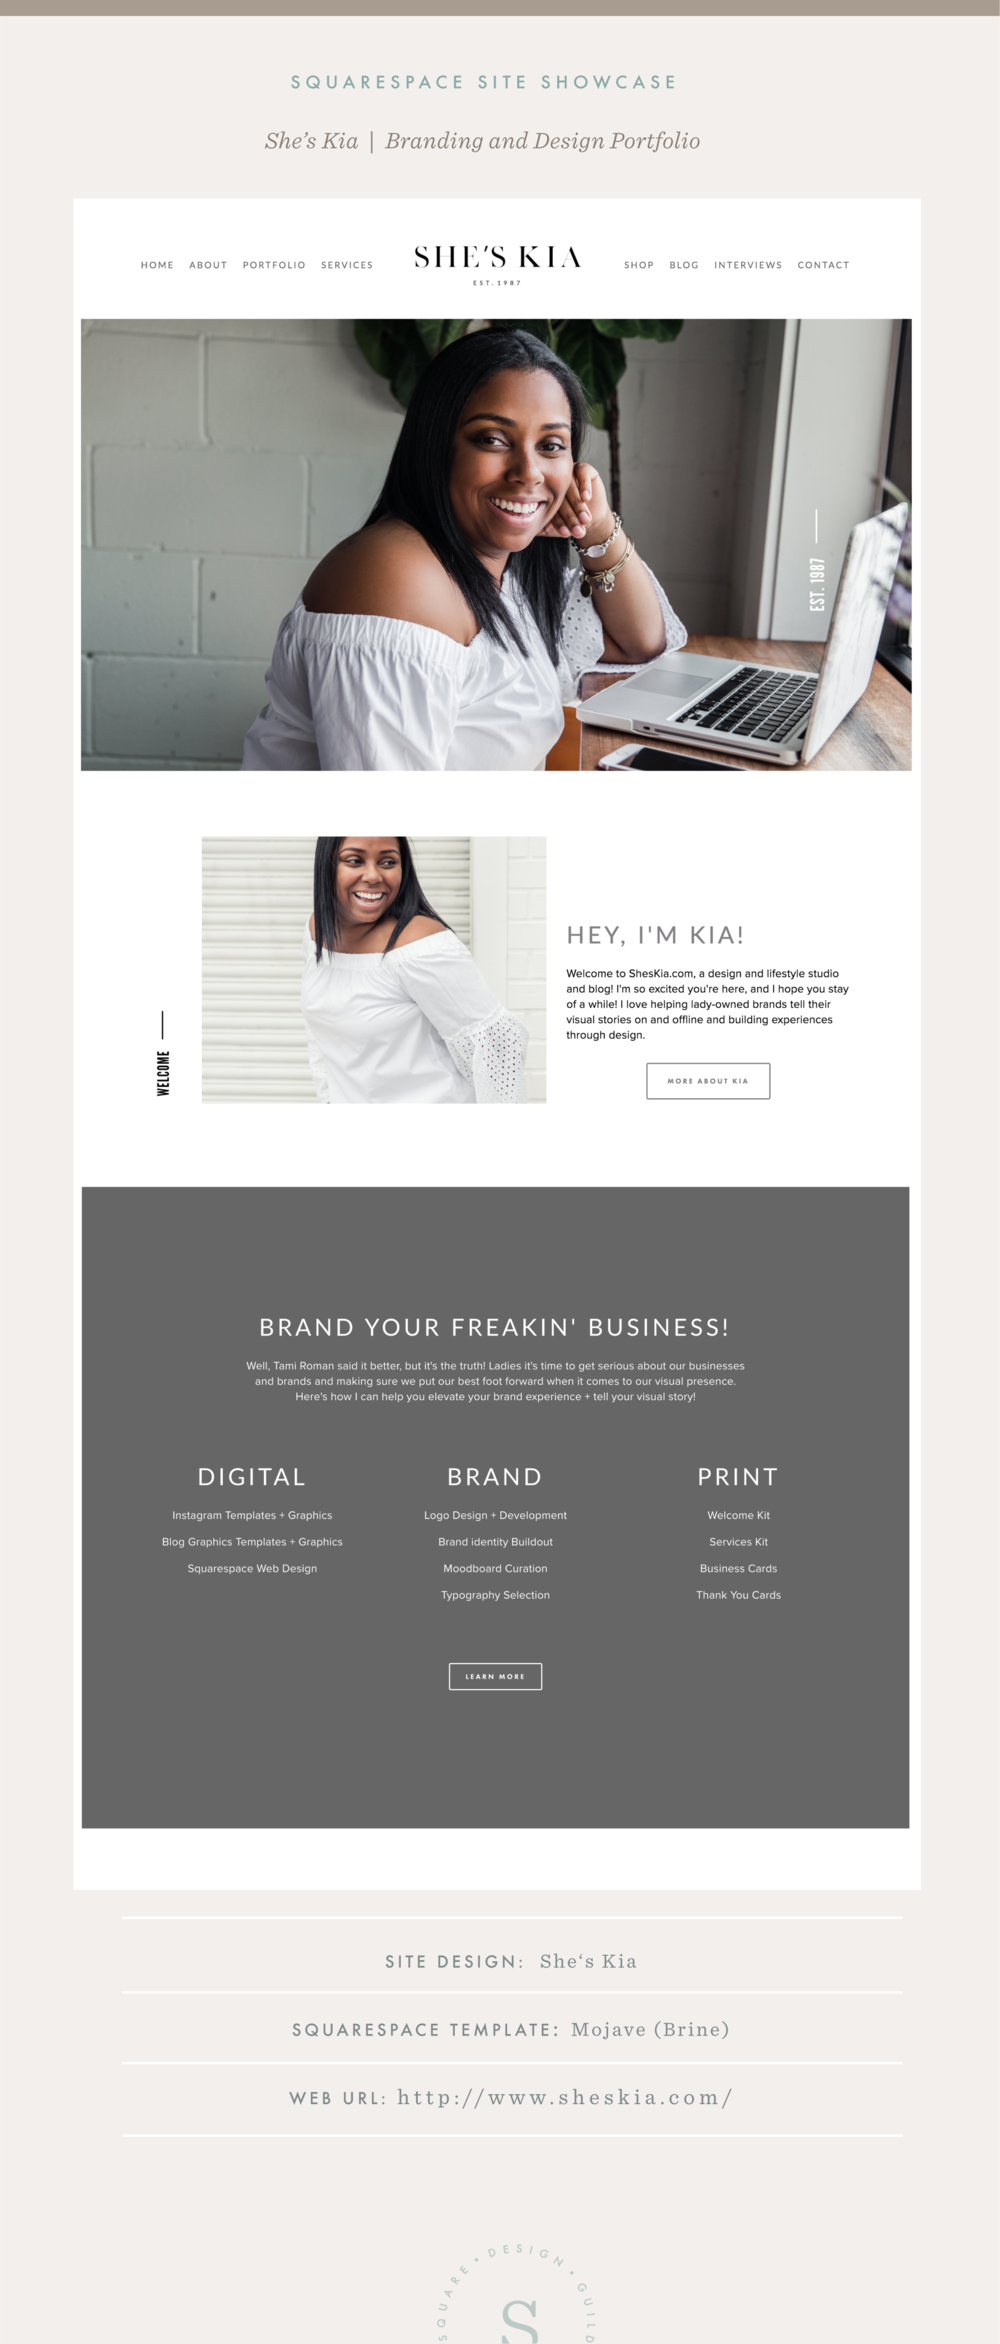 Squarespace Site Showcase | She's Kia | Brine Template